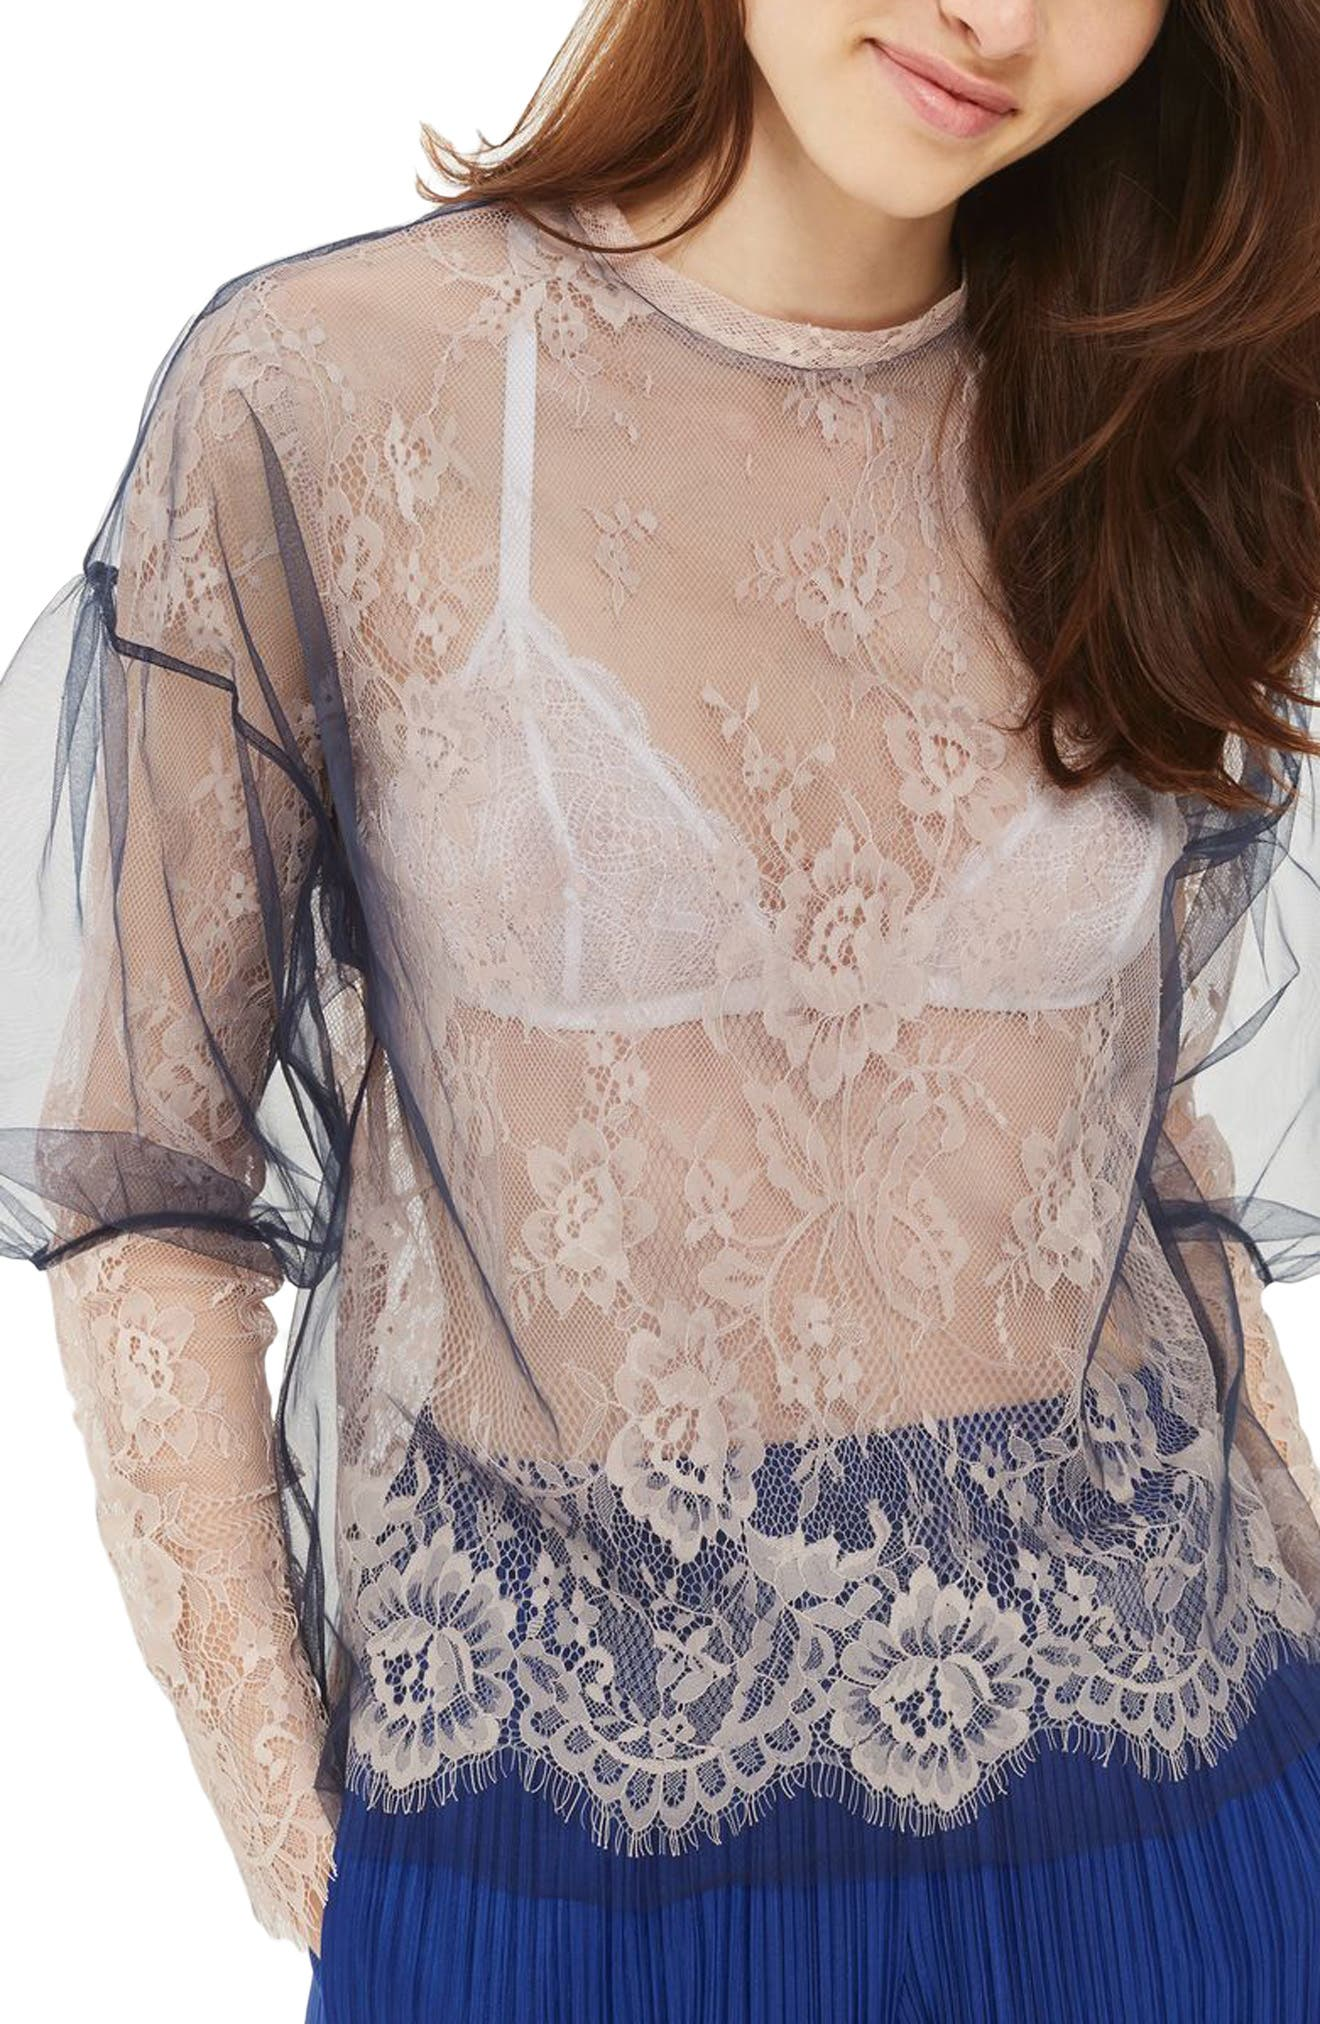 Topshop Tulle Overlay Lace Top